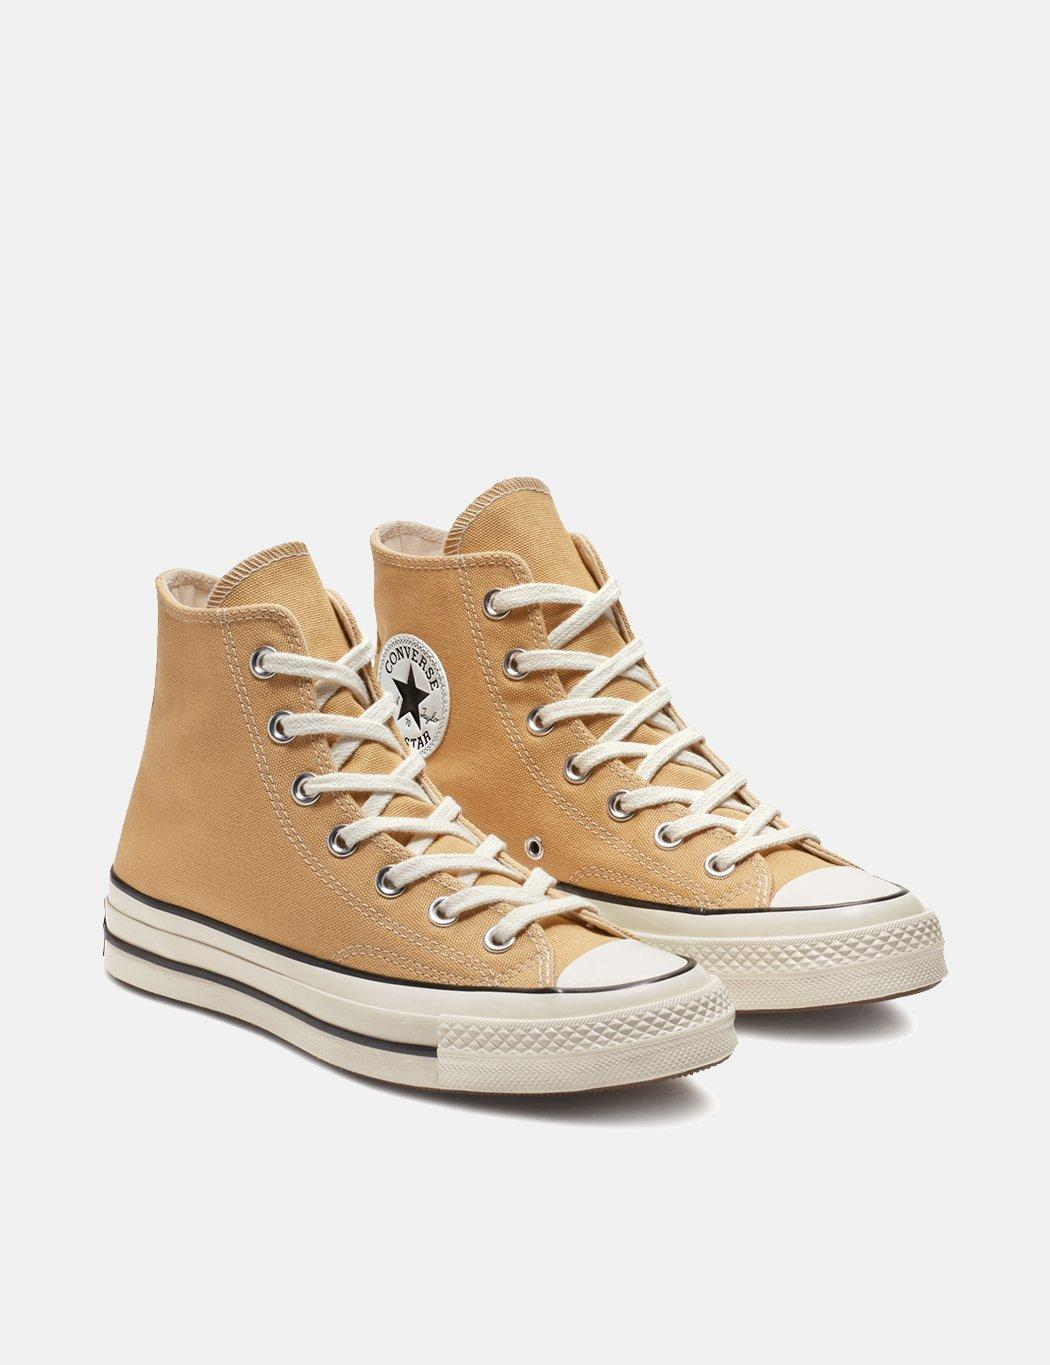 Lyst - Converse 70 s Chuck Taylor Hi (163297c) in Metallic for Men 5ac614c9a